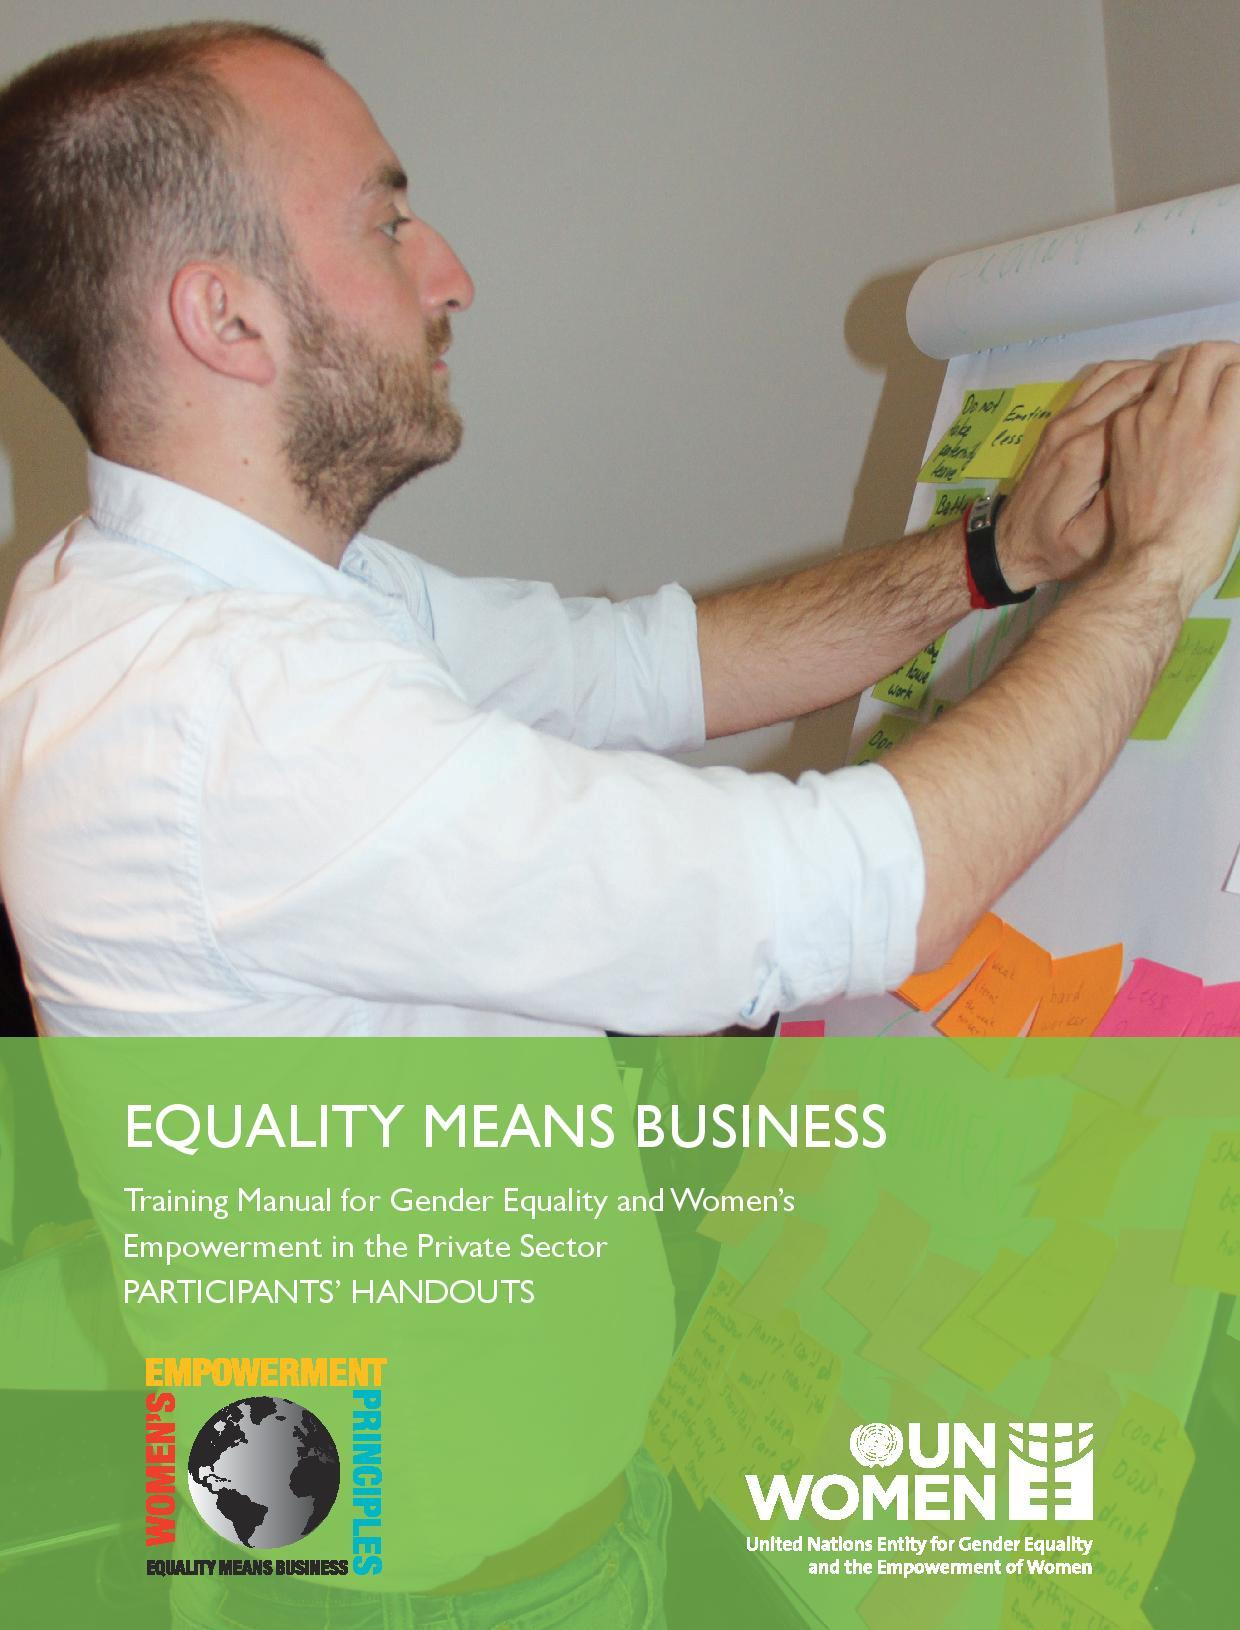 Equality Means Business: Training Manual for Gender Equality and Women's Empowerment in the Private Sector. Participants' Handouts